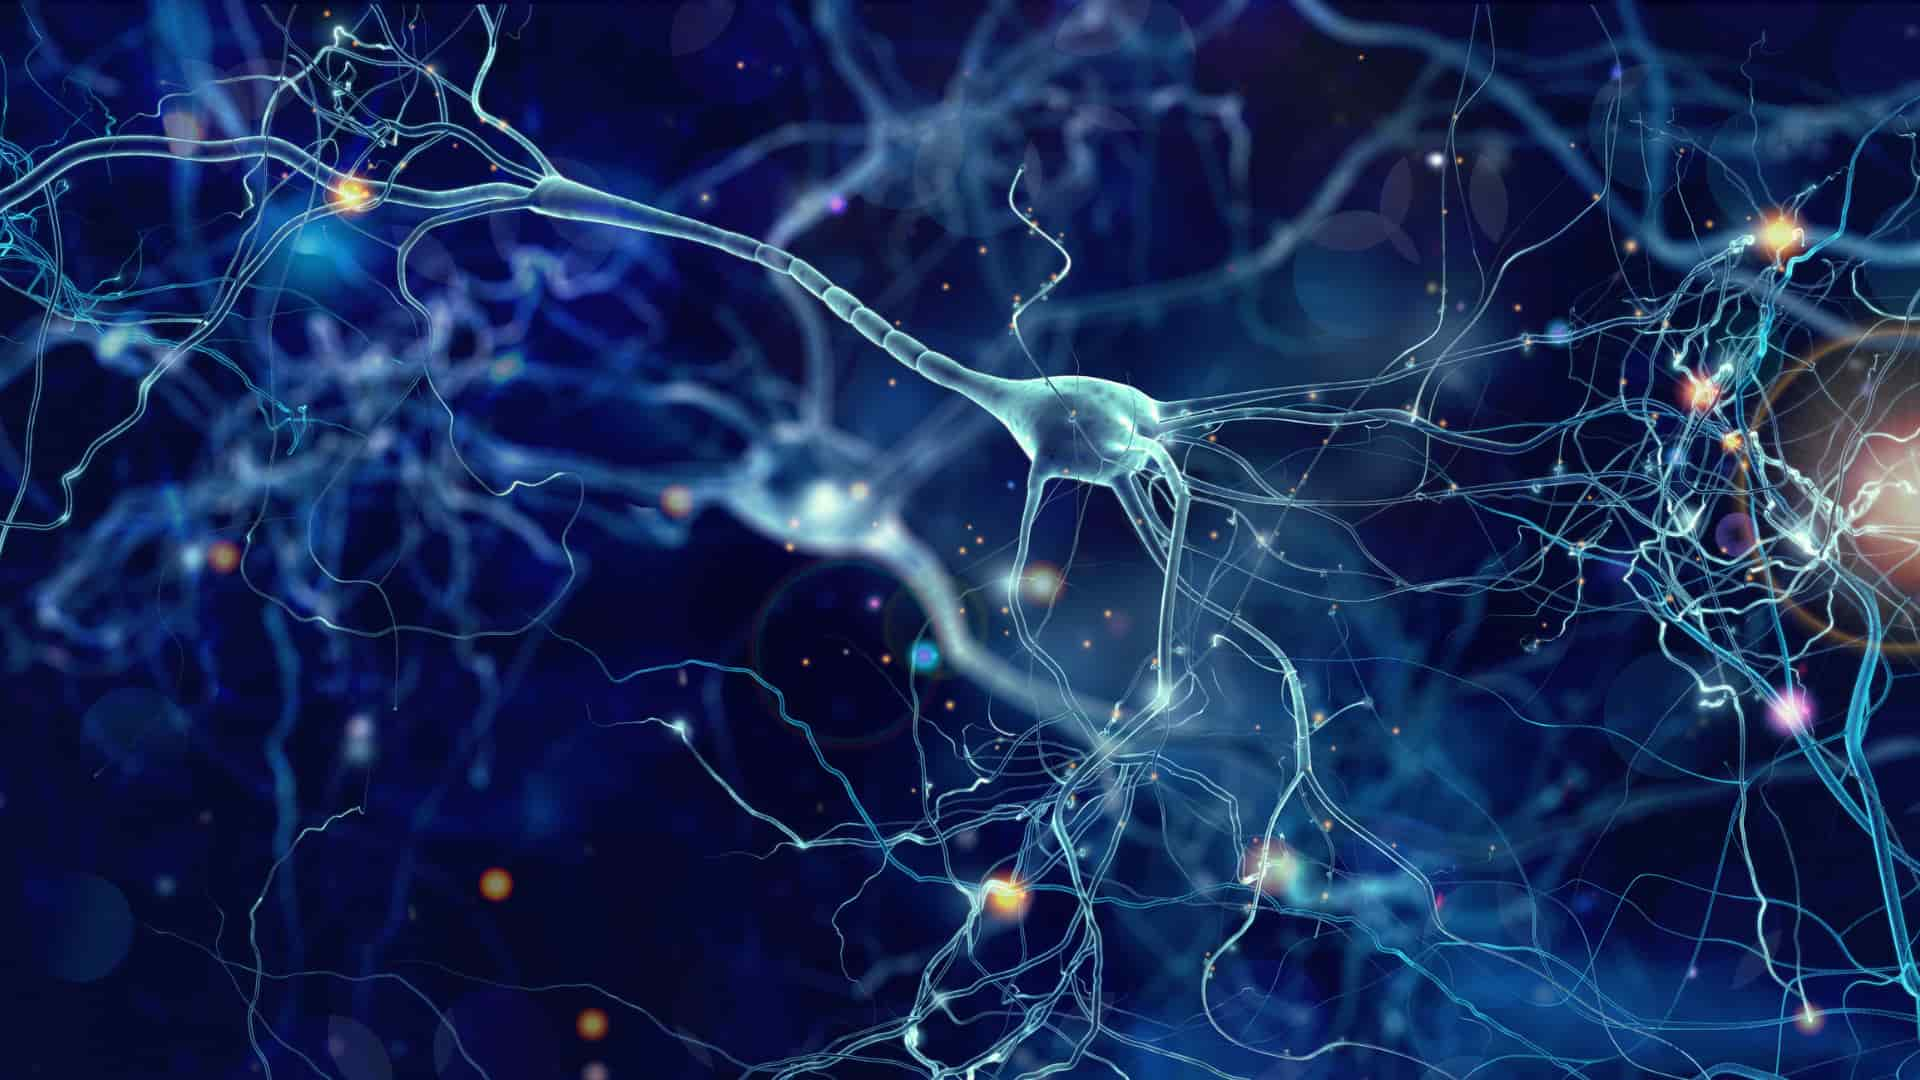 The Power of Neuroplasticity - An Interview with Brant Cortright, Ph.D.